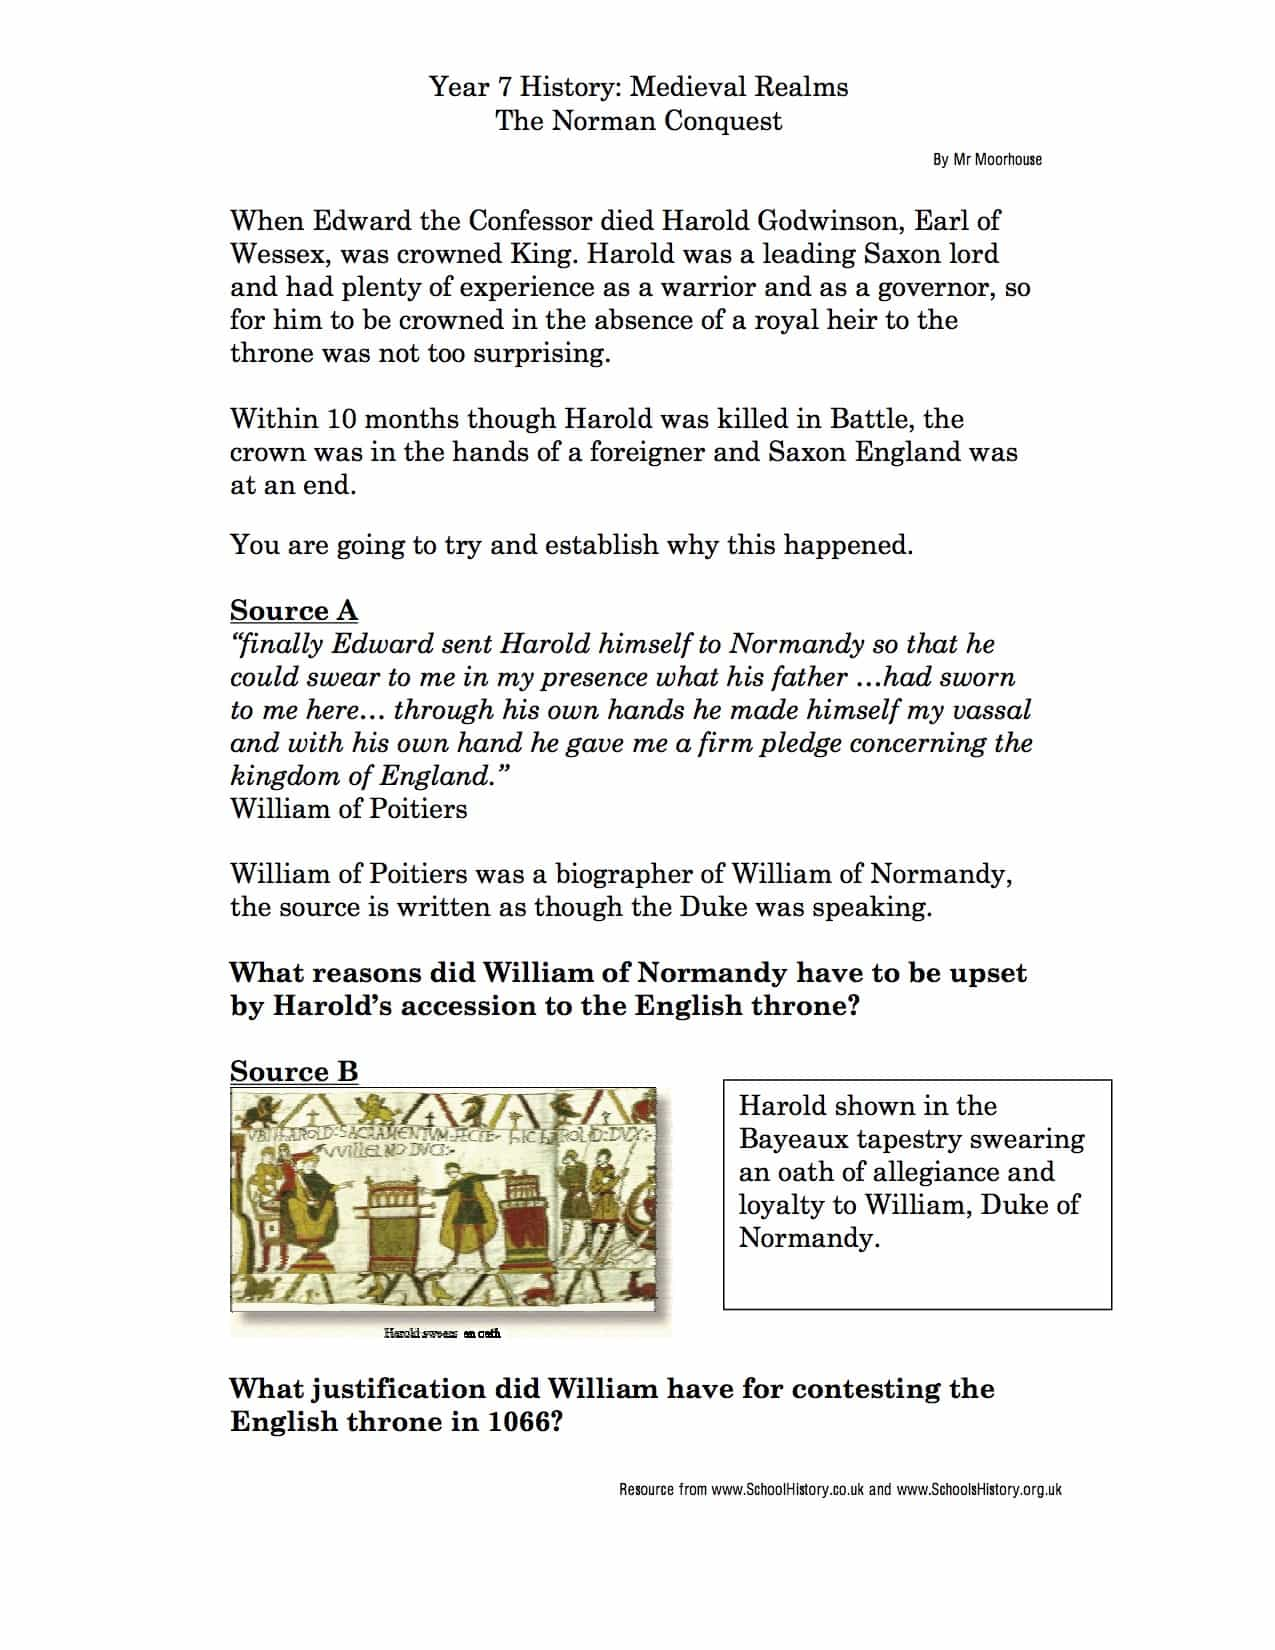 Causes Of The Battle Of Hastings